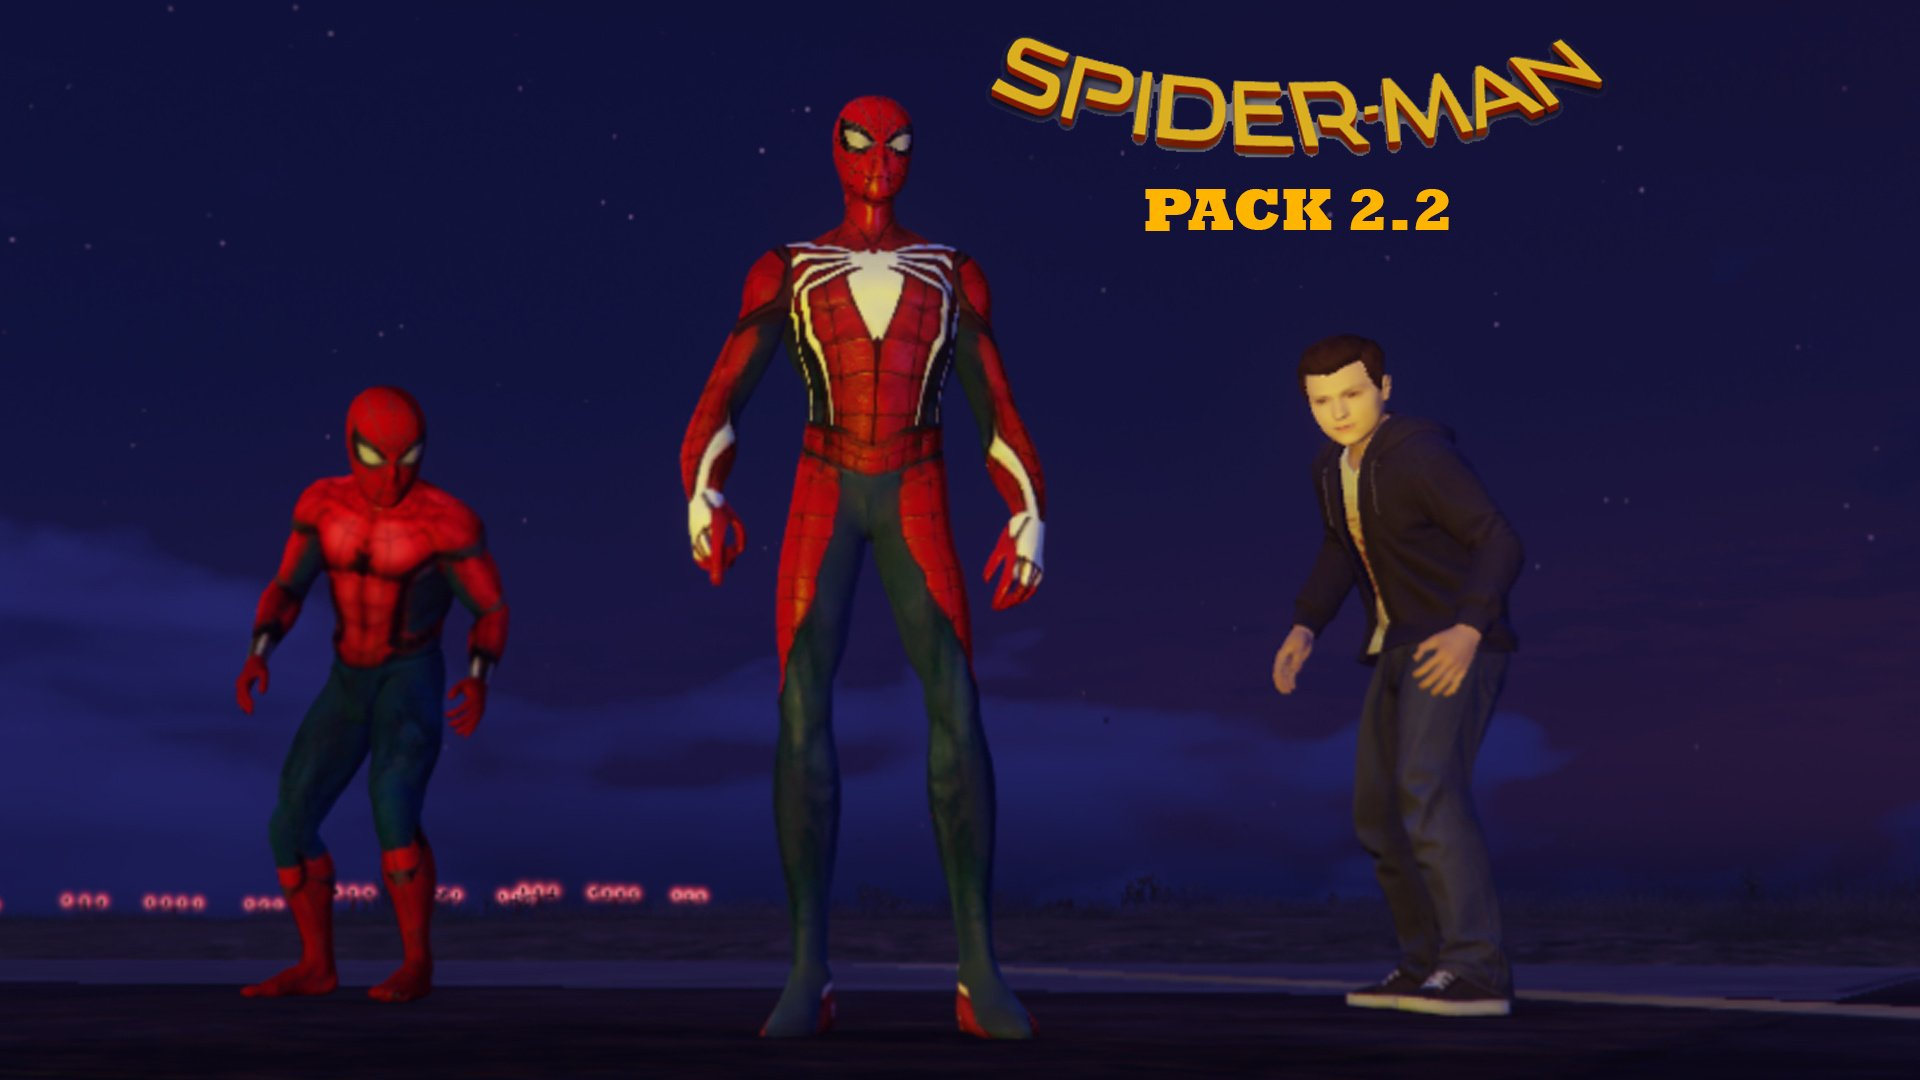 Spider-Man Pack (Far From Home, Infinity War, PS4 Advanced